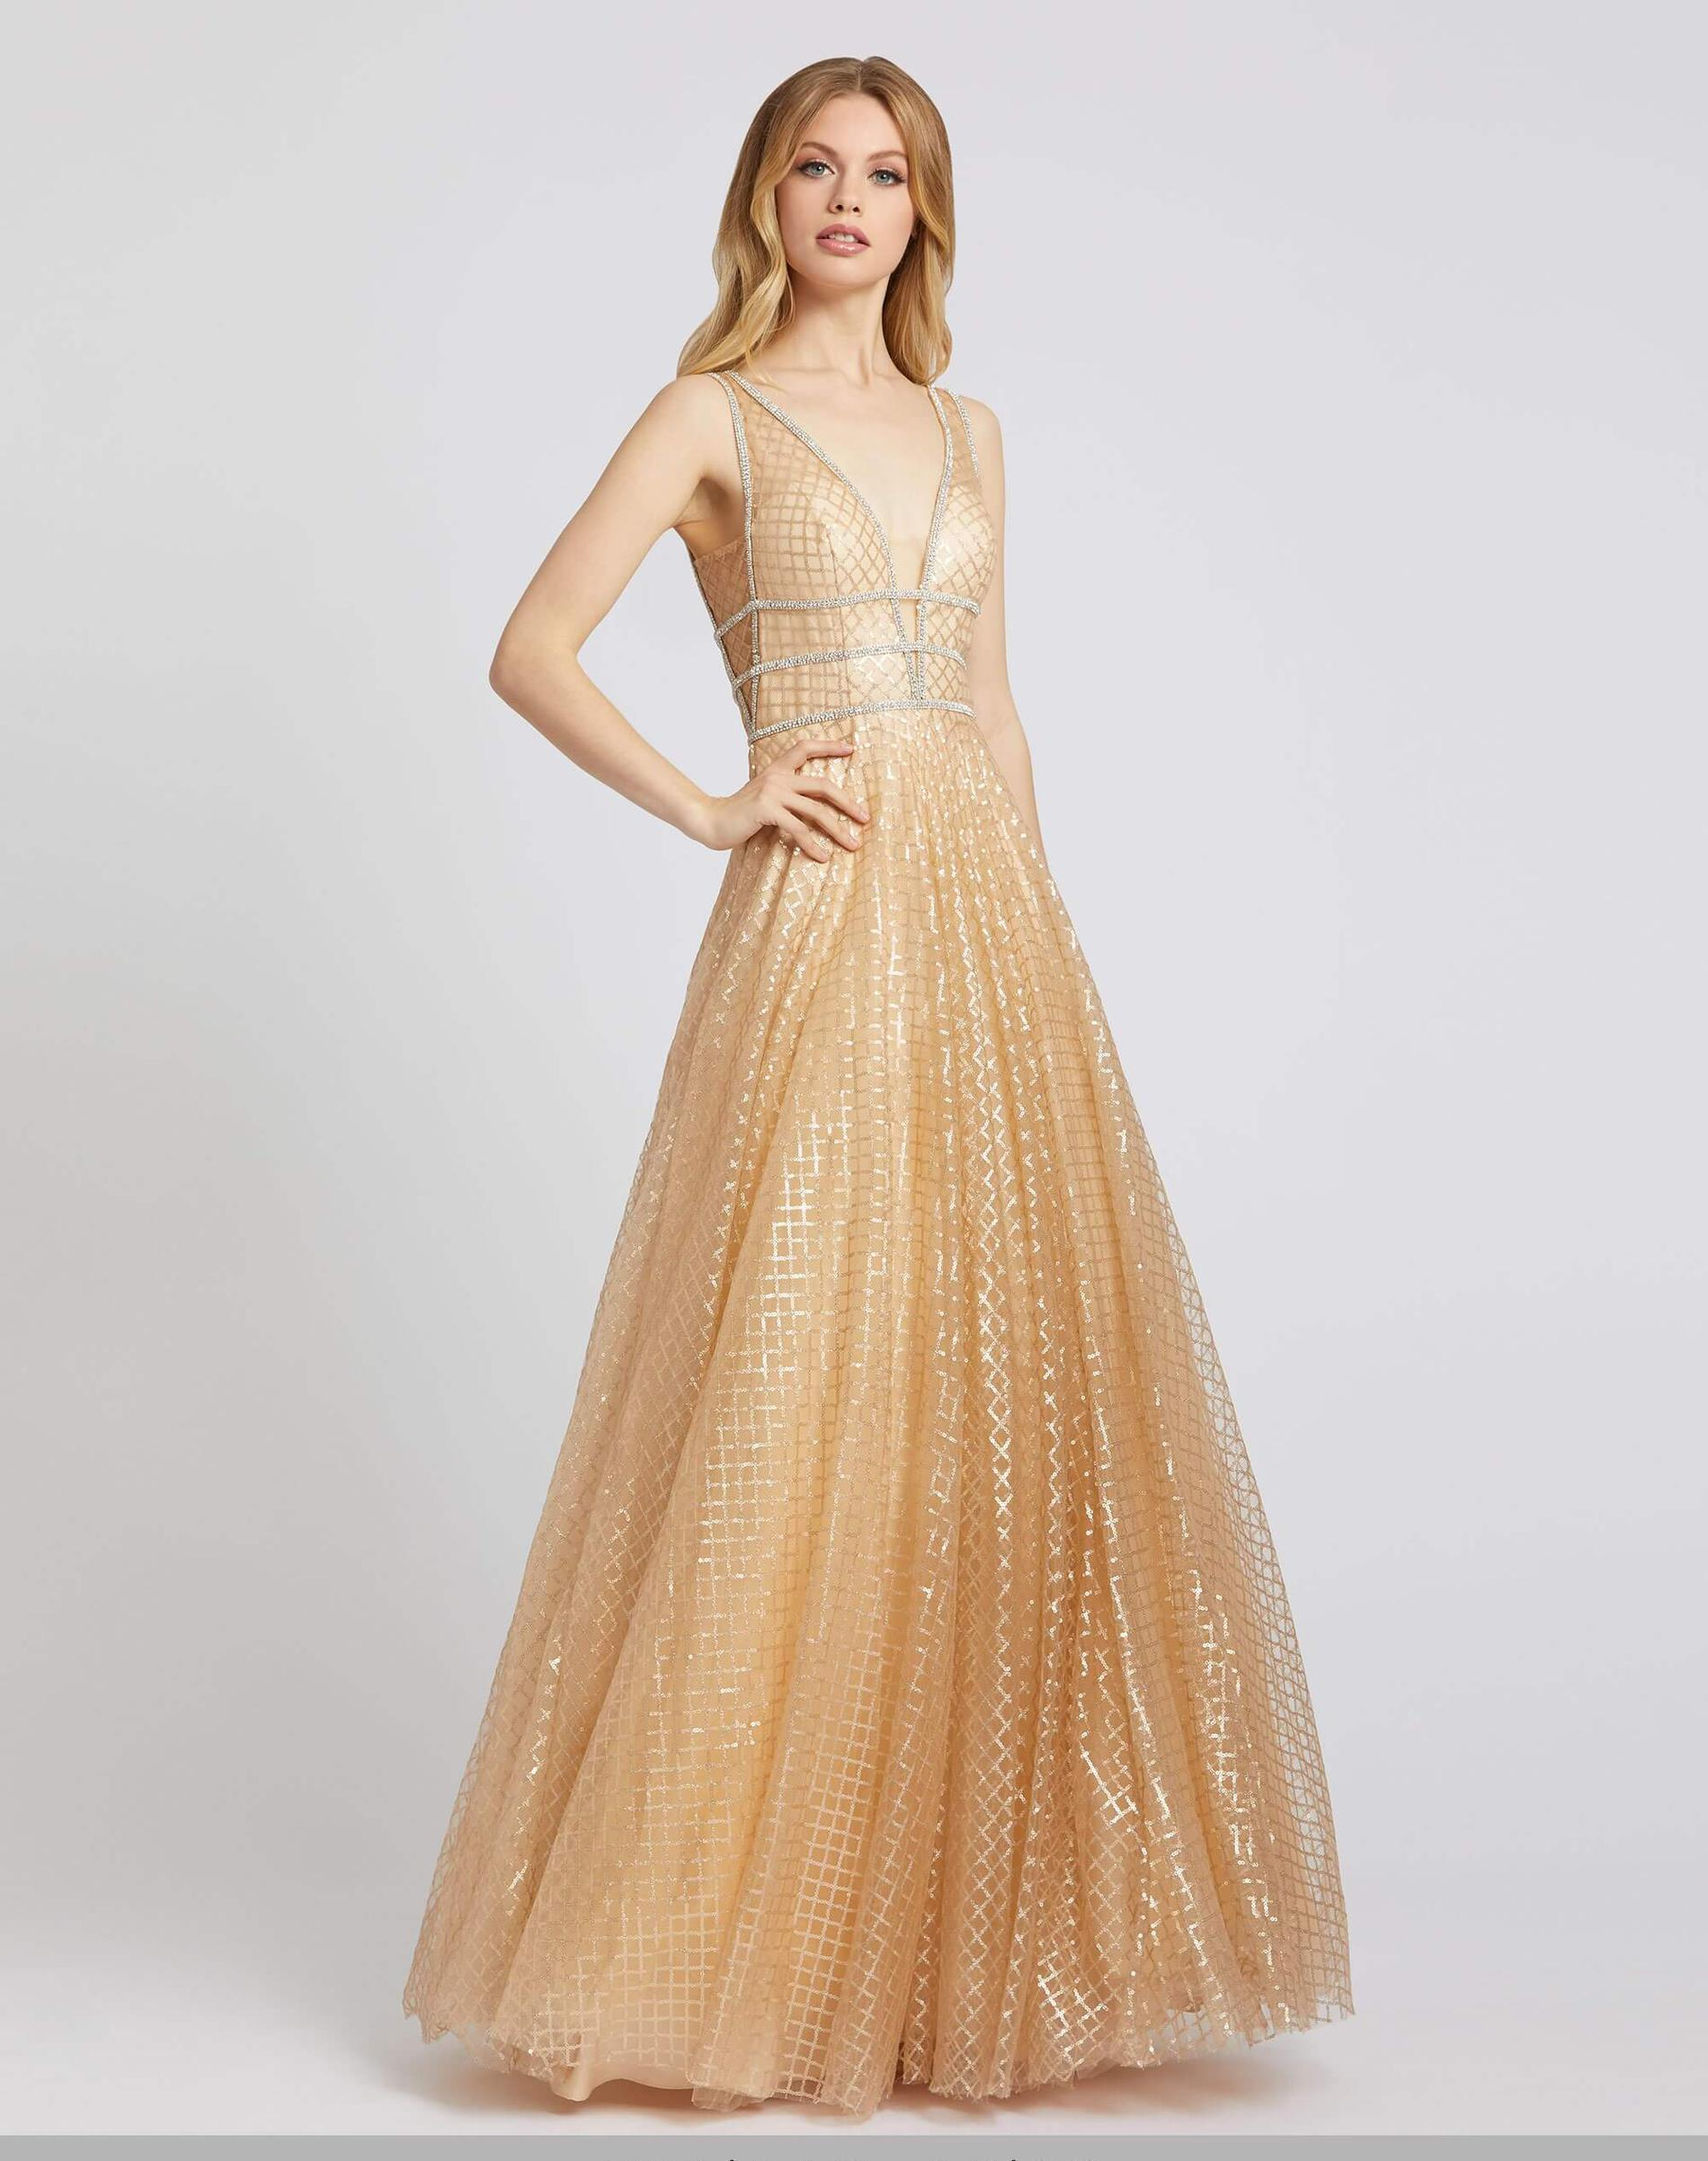 Style 77402 Mac Duggal Gold Size 8 Sheer Tall Height V Neck A-line Dress on Queenly